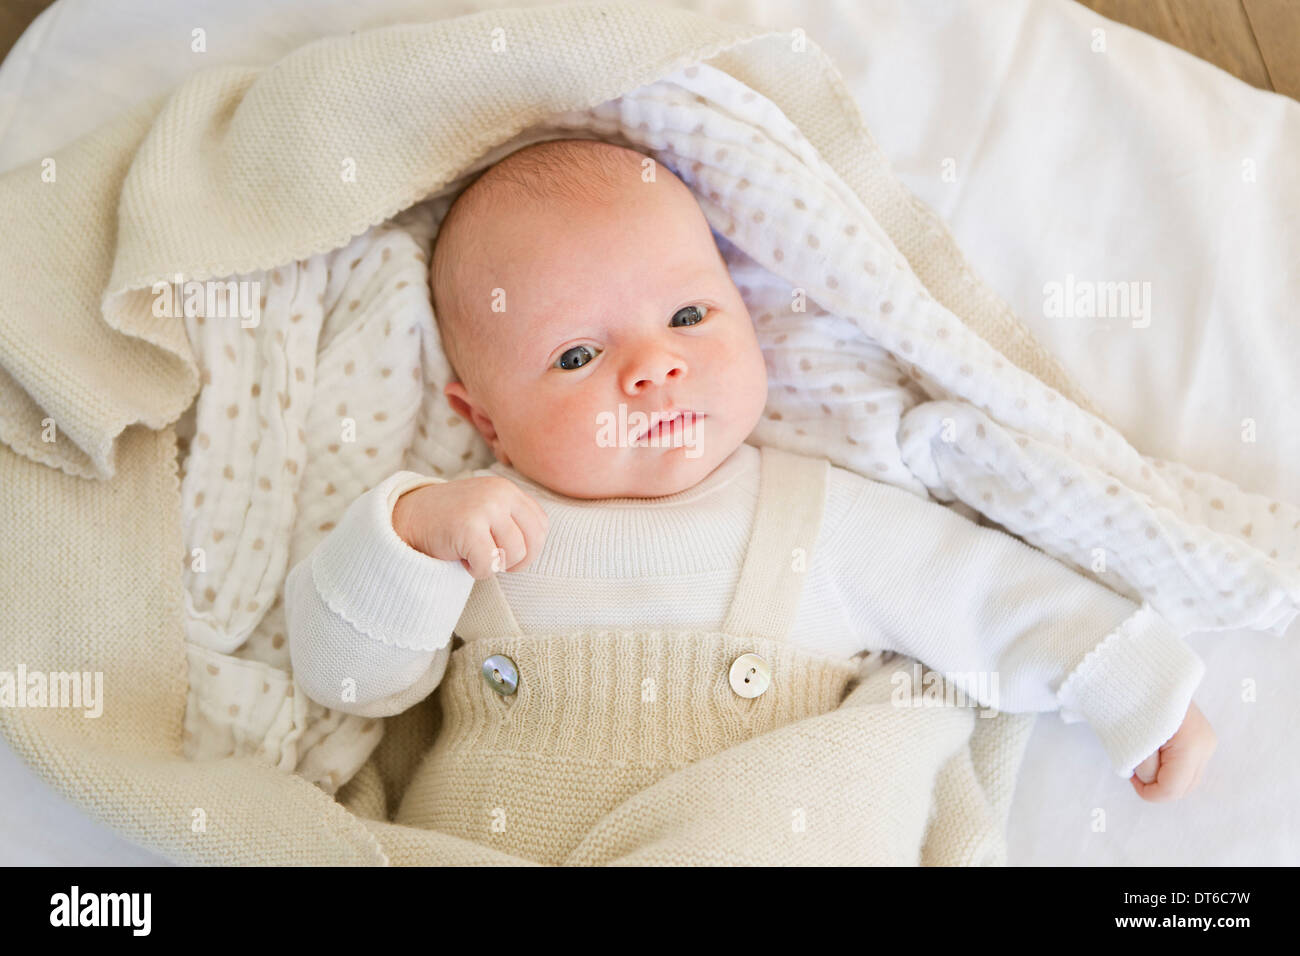 Baby girl lying on bedclothes - Stock Image